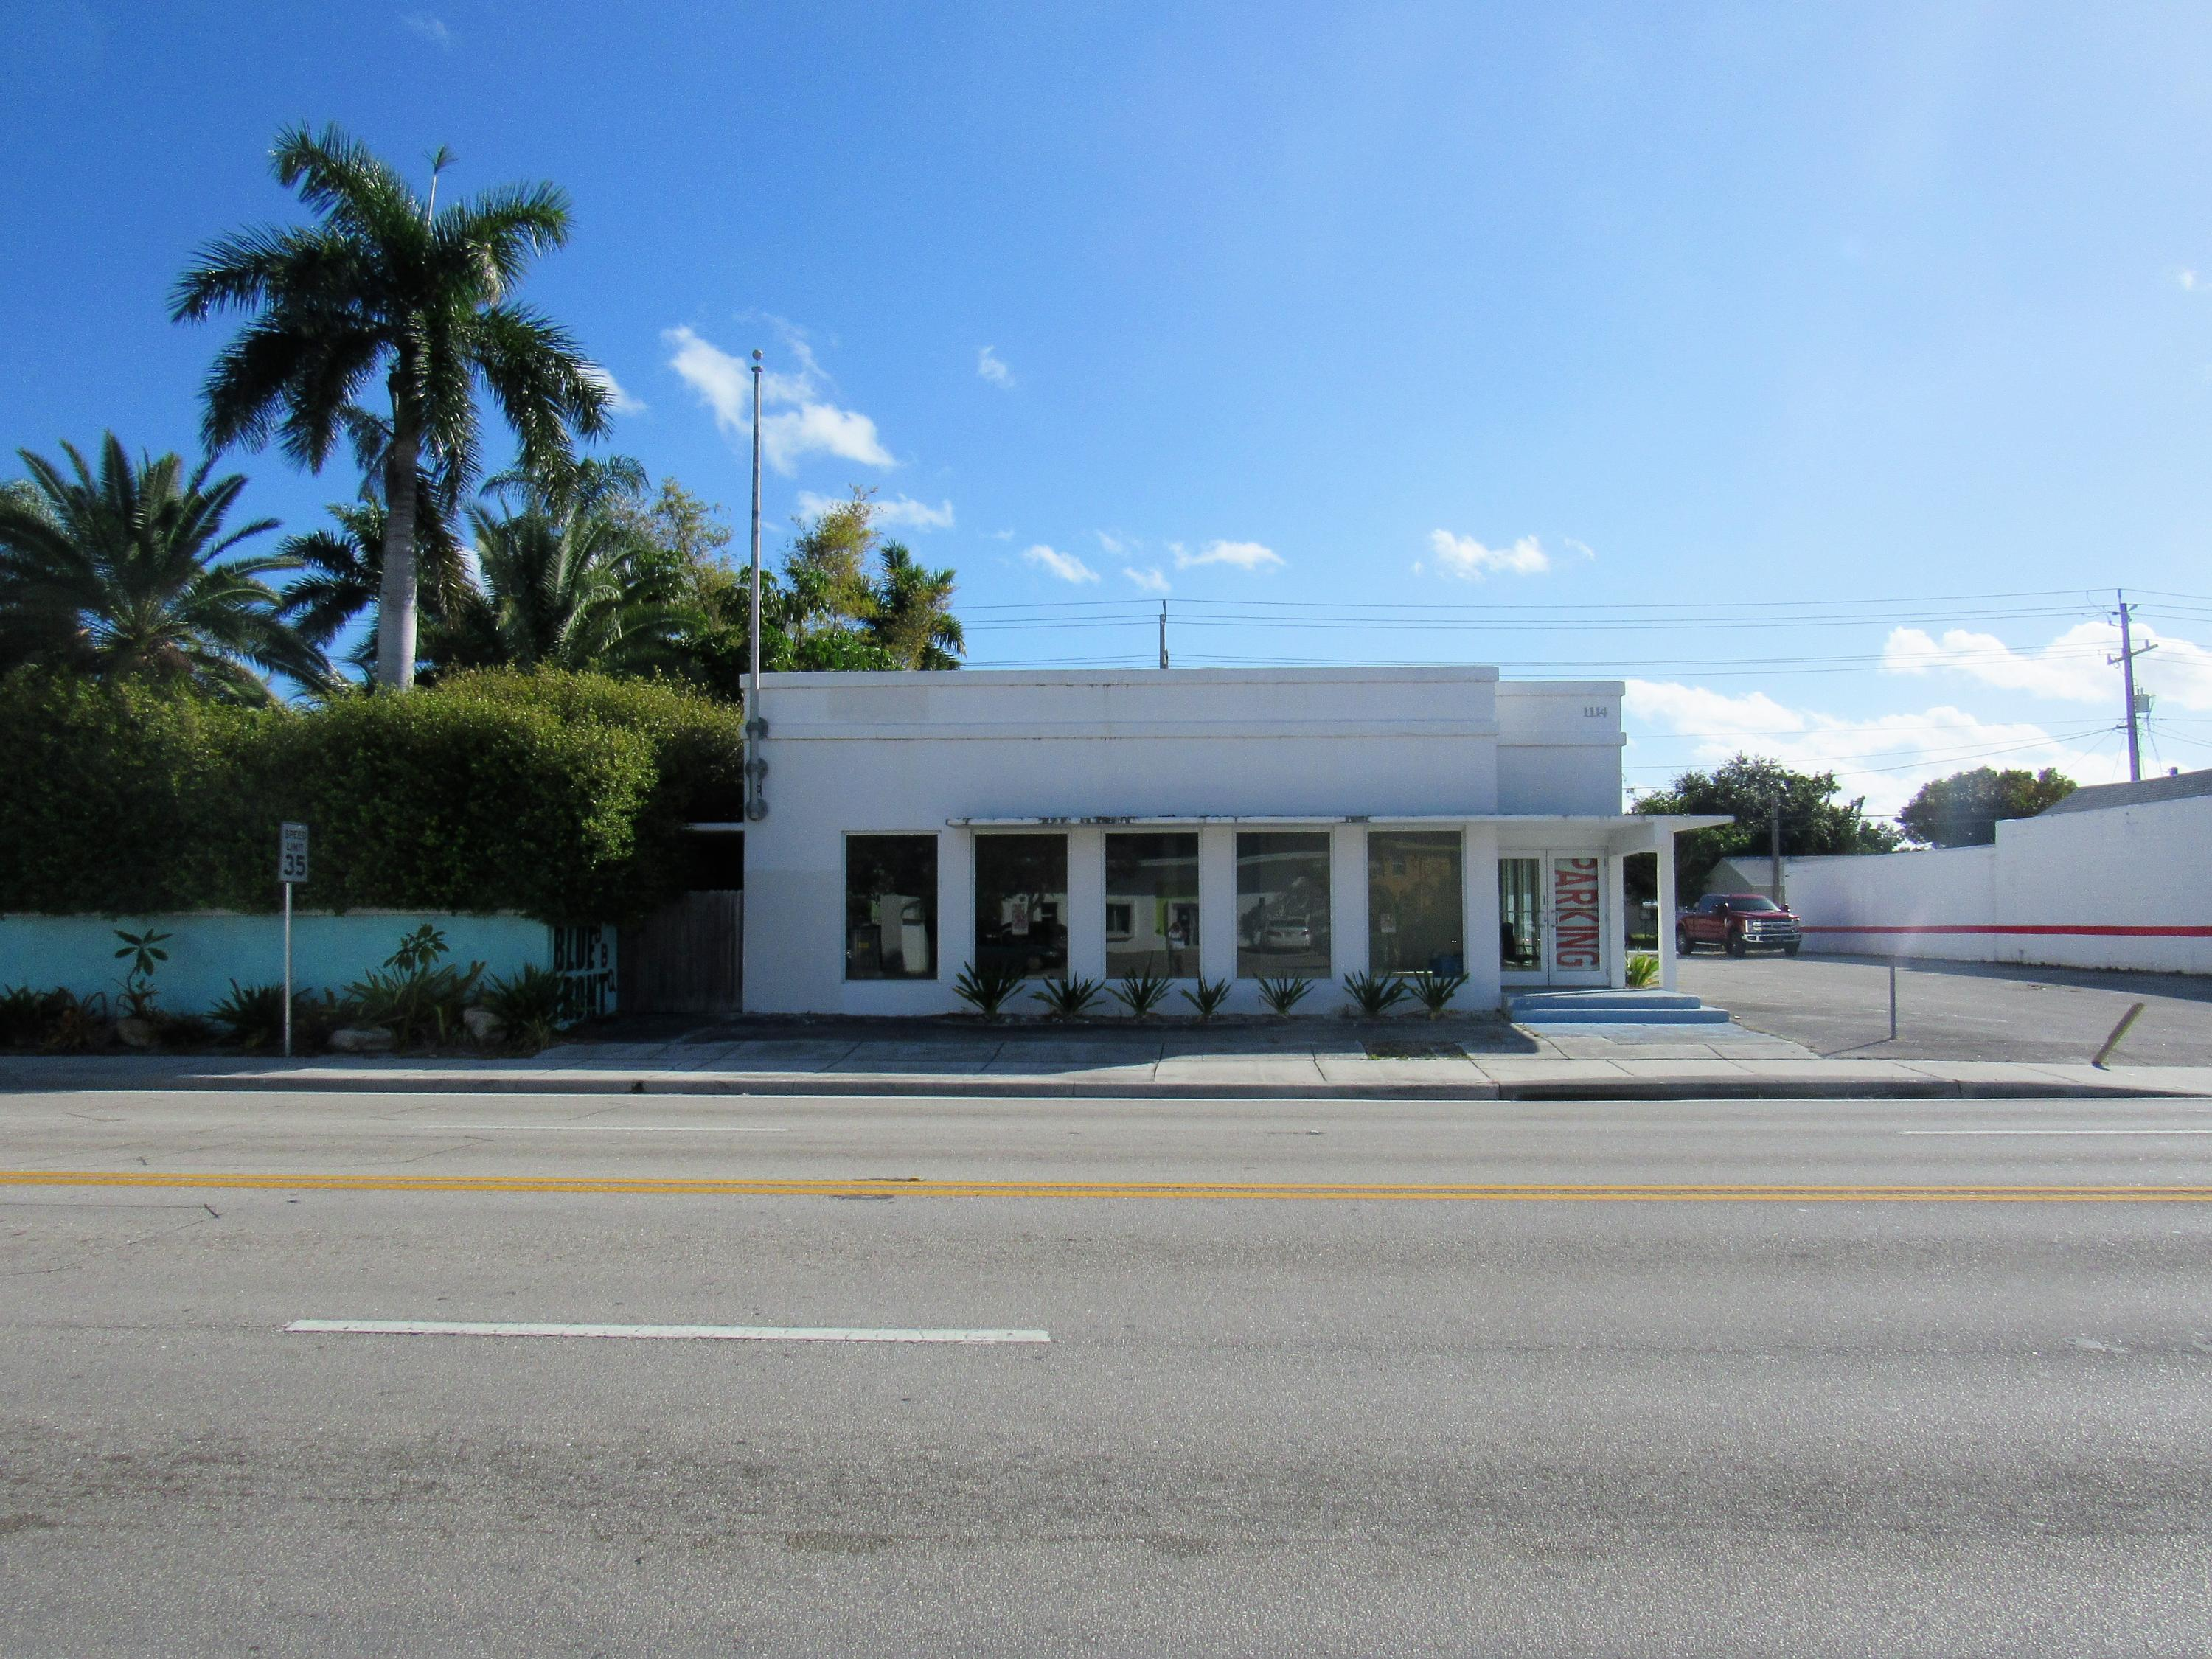 1114 N Dixie, Lake Worth, Florida 33460